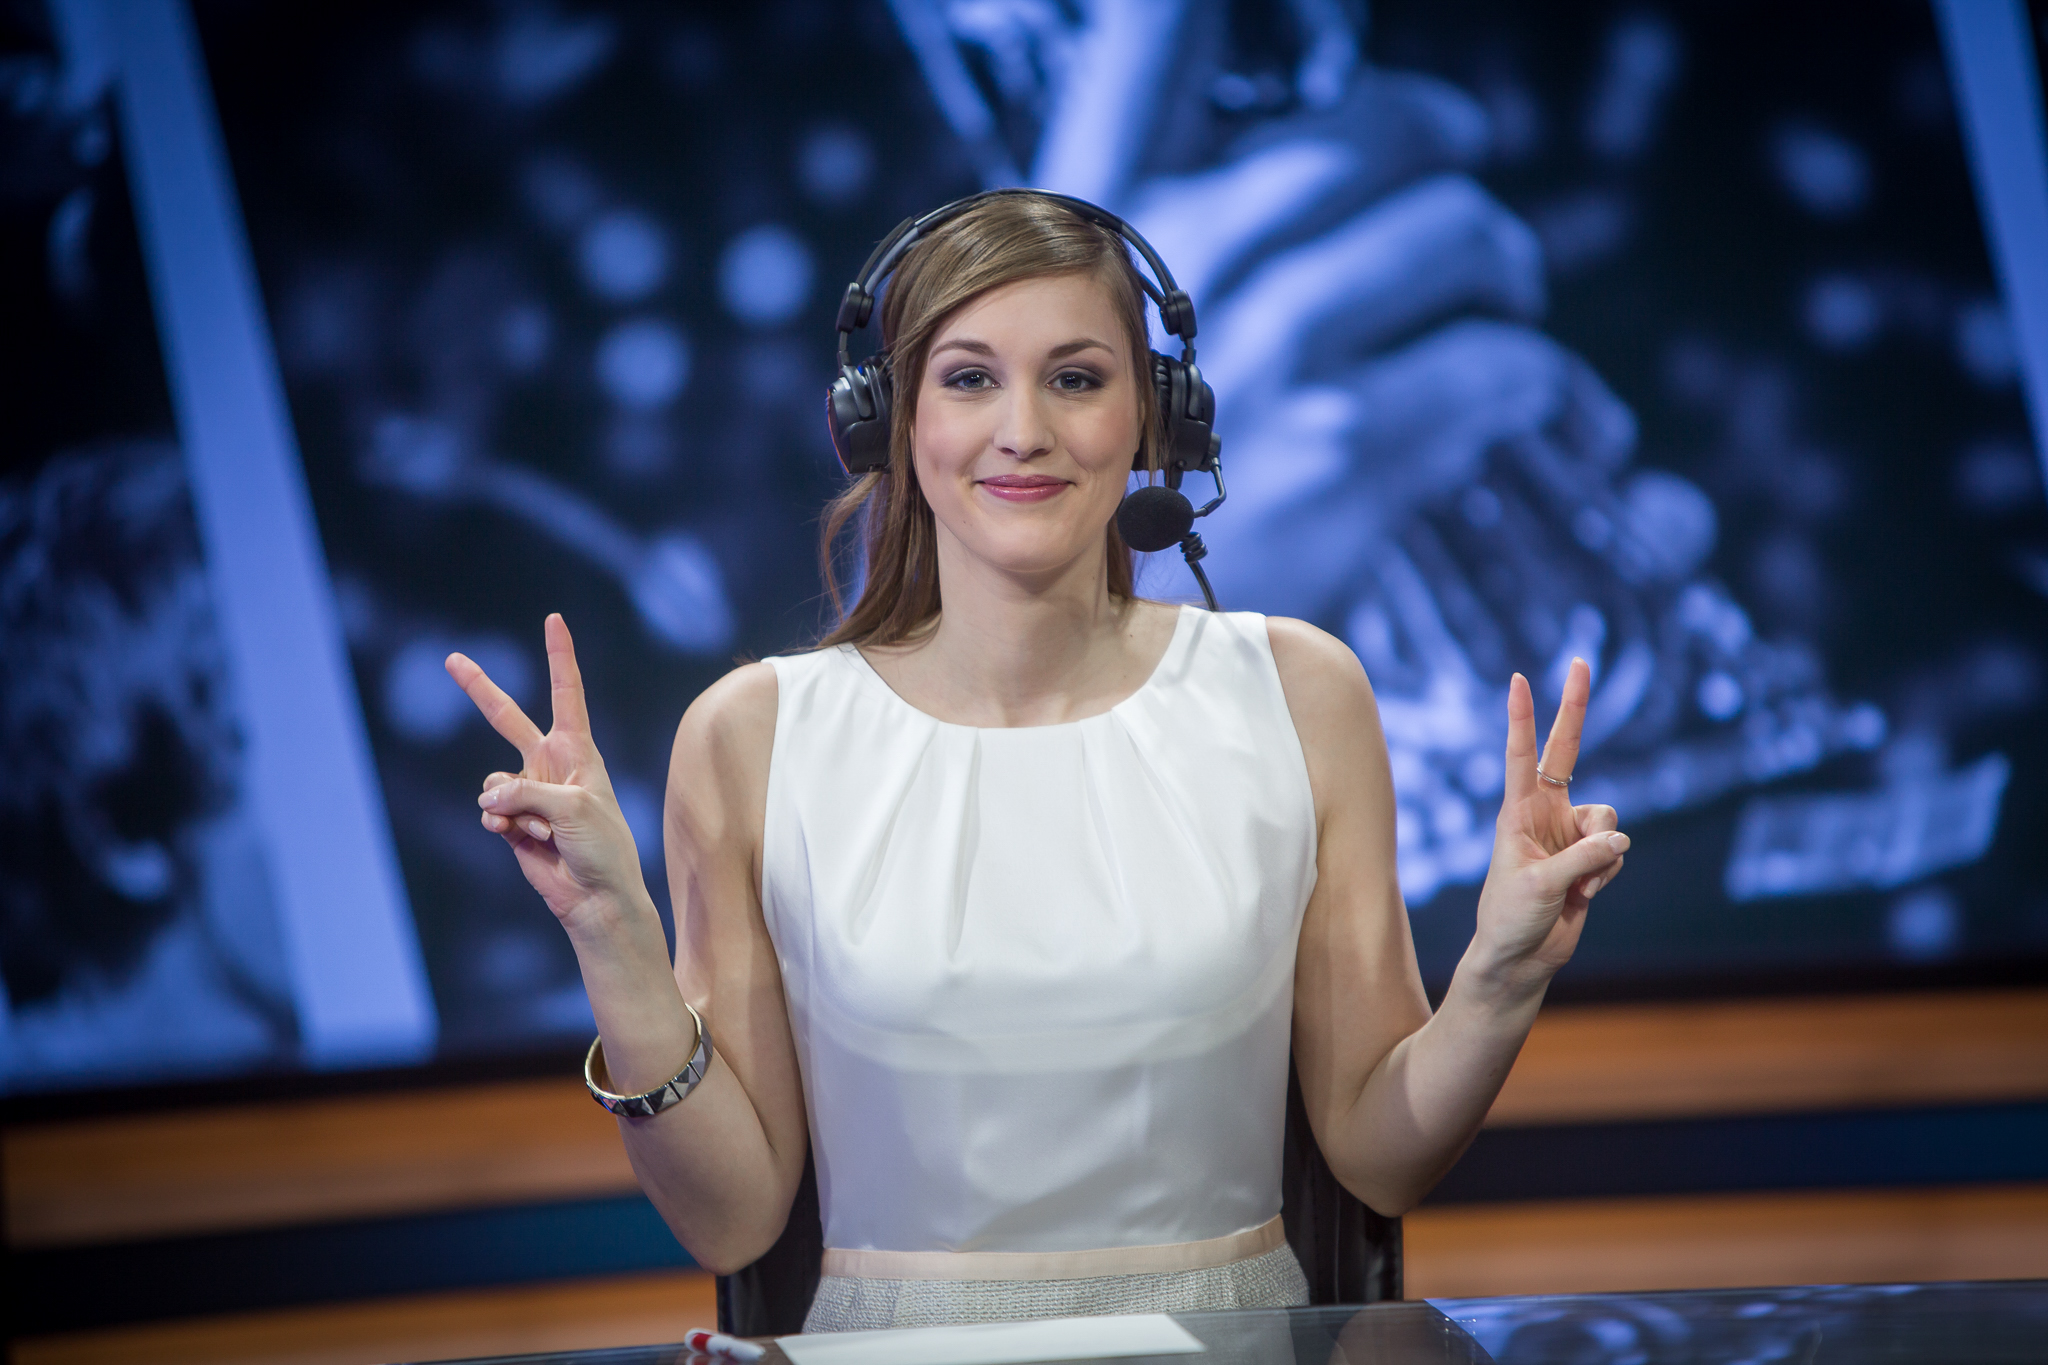 Eefje Depoortere (@sjokz) nudes (97 photo) Ass, 2015, butt